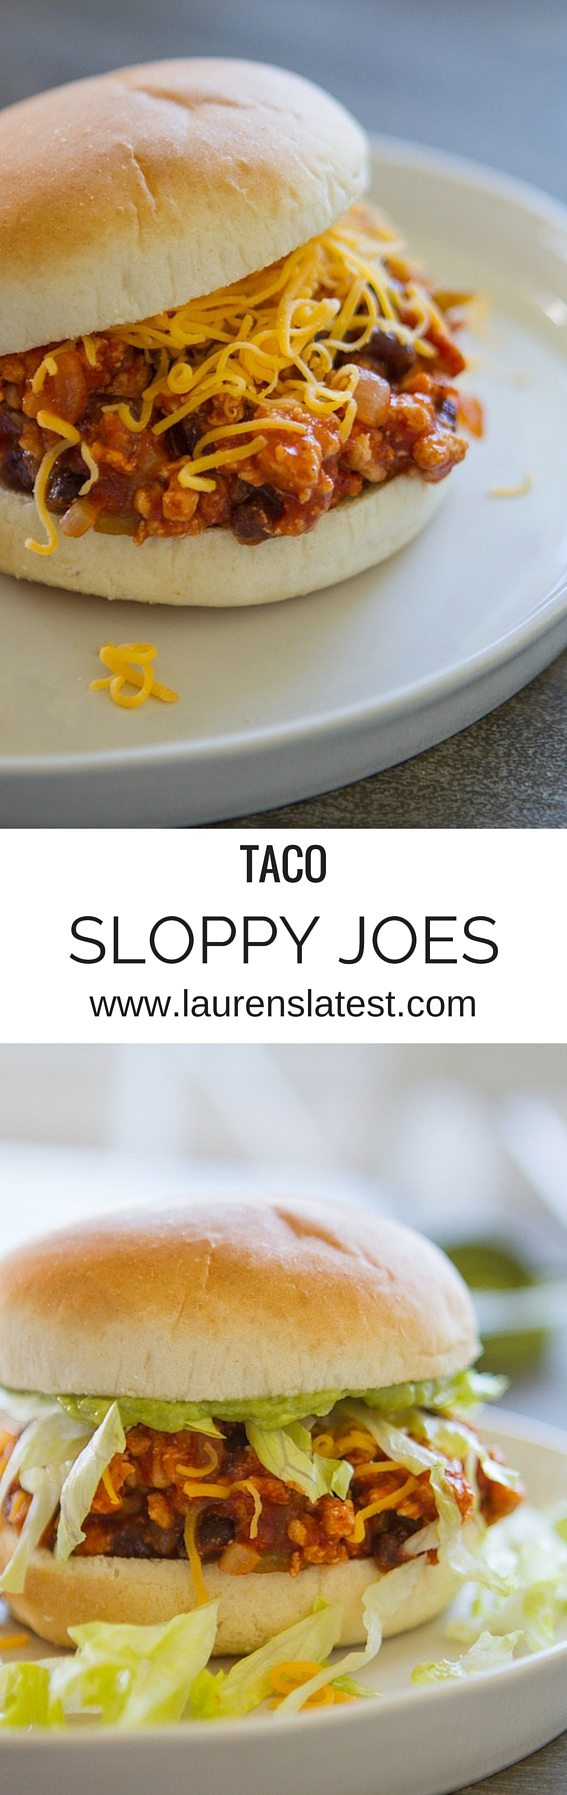 If you love sloppy joes, you will love these taco sloppy joes! Get all the flavors of a taco with all the great toppings in a messy sloppy joe dinner. My kids gobbled these up so fast! Delicious!